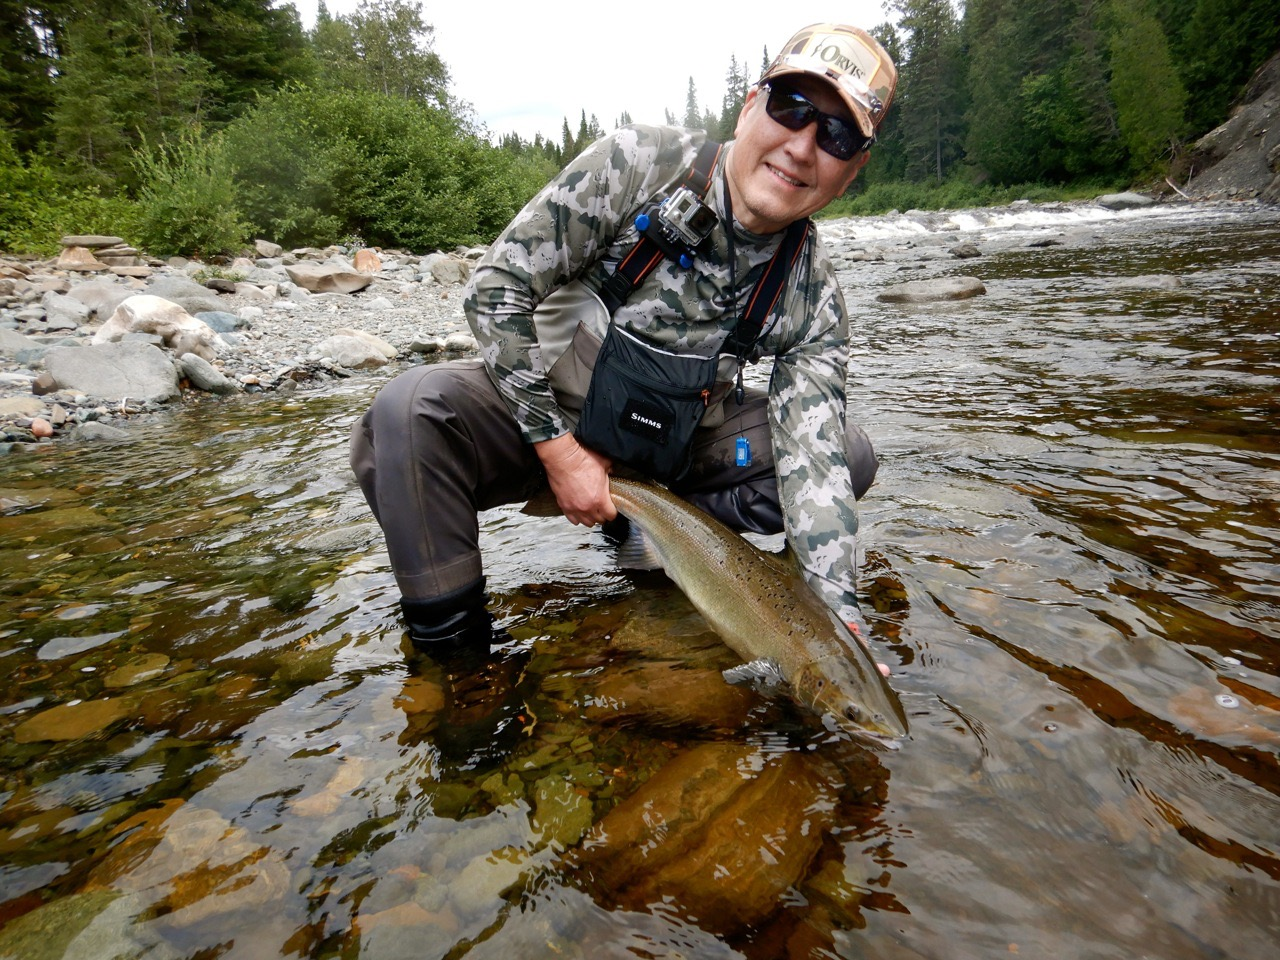 Paul Baek landed this fine salmon on the Grand Cascapedia, well Done Paul !